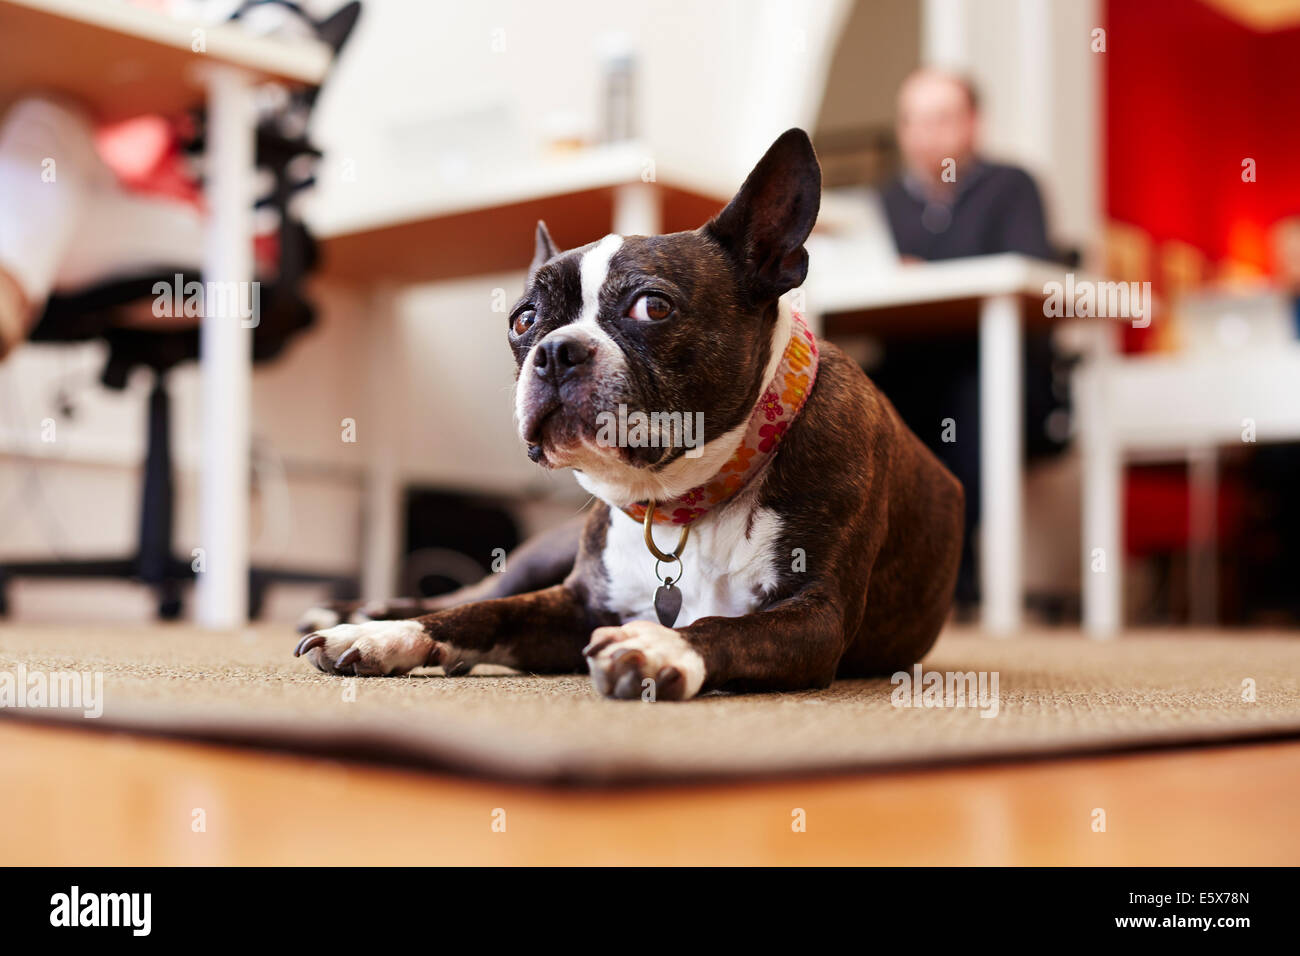 Portrait of curious dog lying on rug in an office - Stock Image